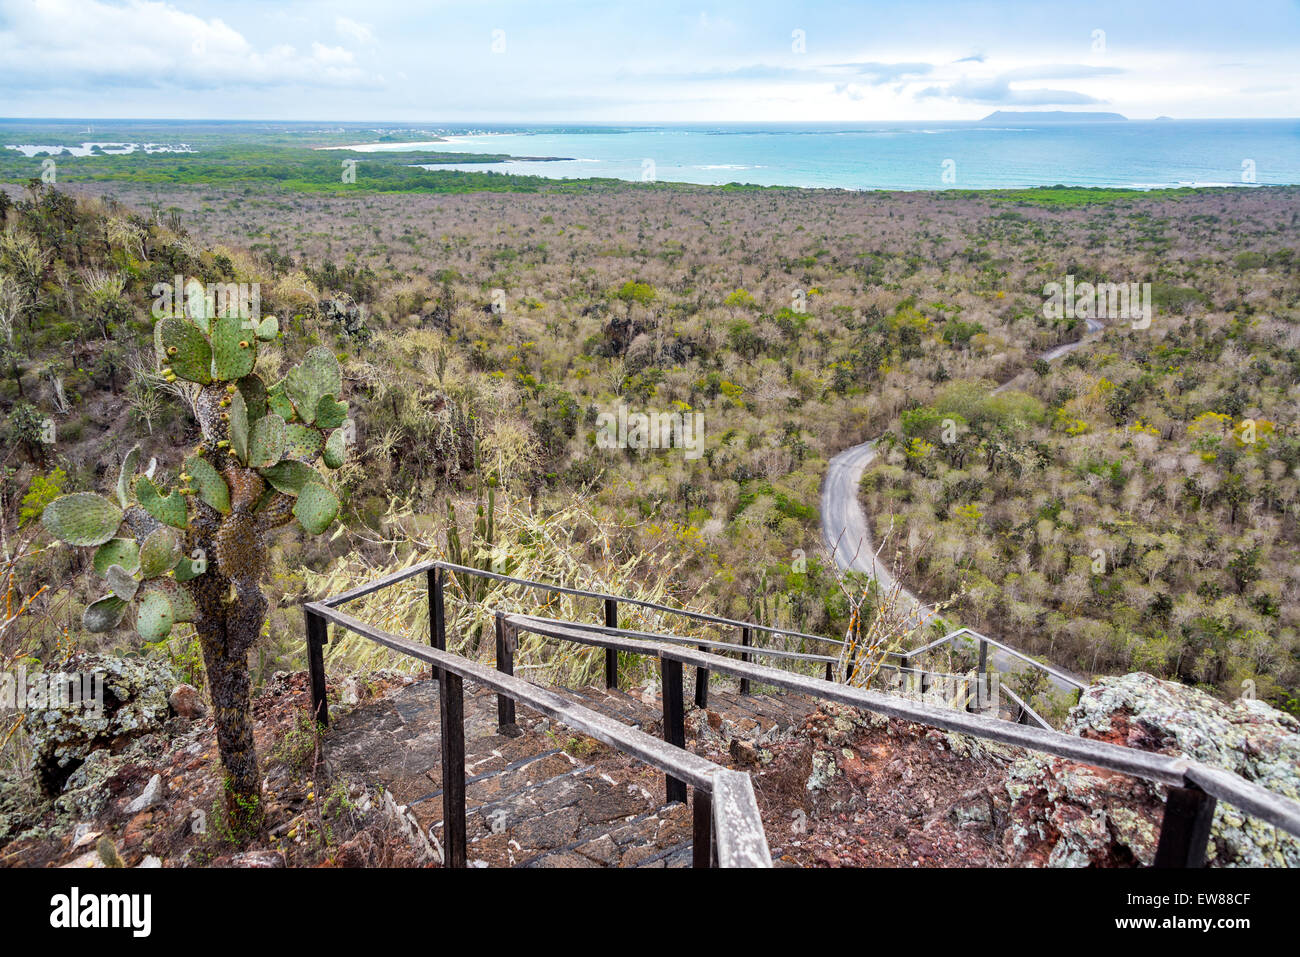 Landscape of Isabela Island in the Galapagos Islands in Ecuador - Stock Image